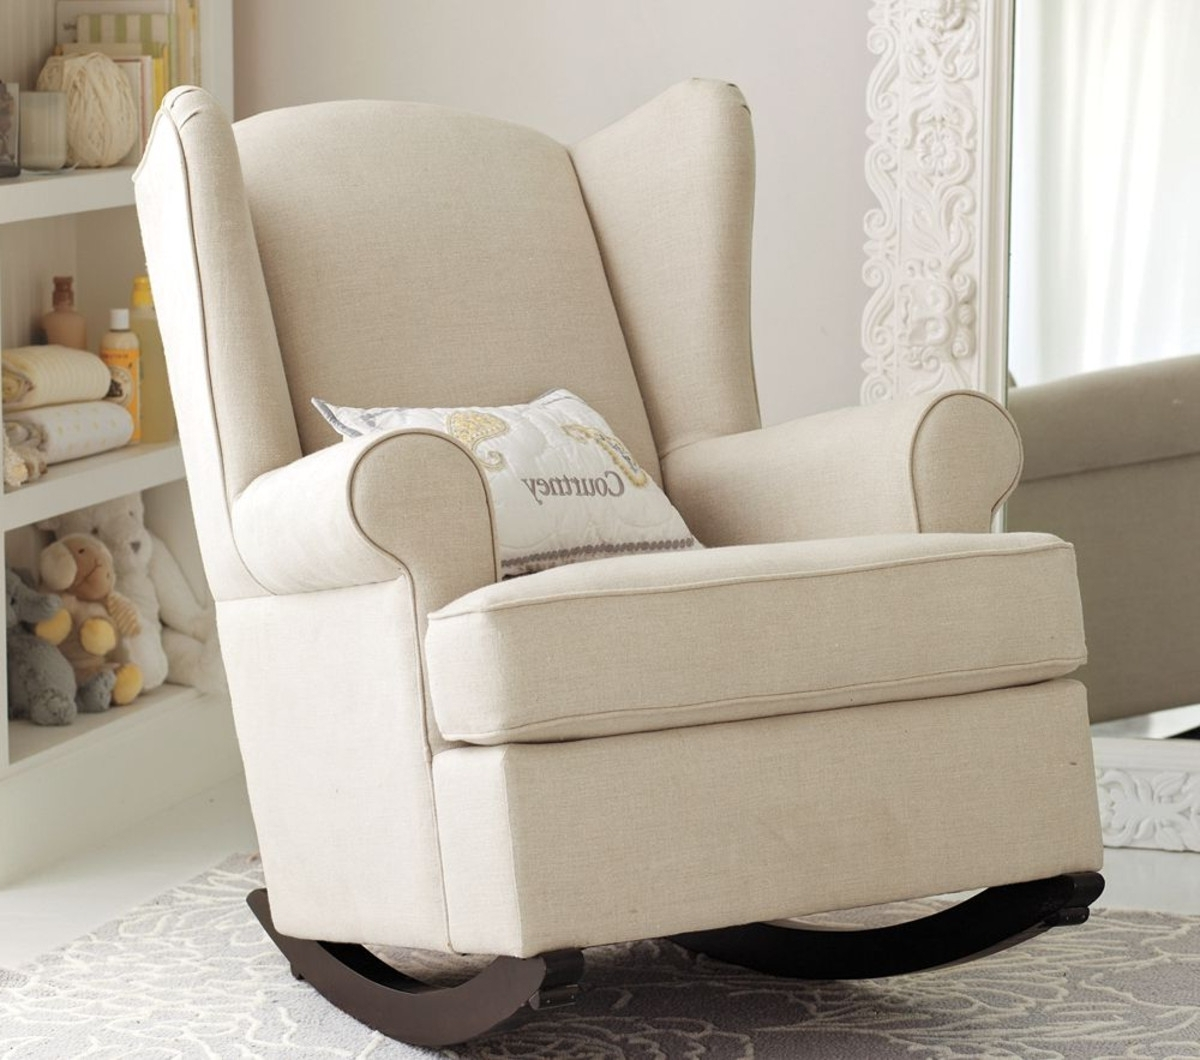 Current Rocking Chair Nursery Target F65X In Brilliant Home Design Furniture Intended For Rocking Chairs At Target (View 15 of 15)